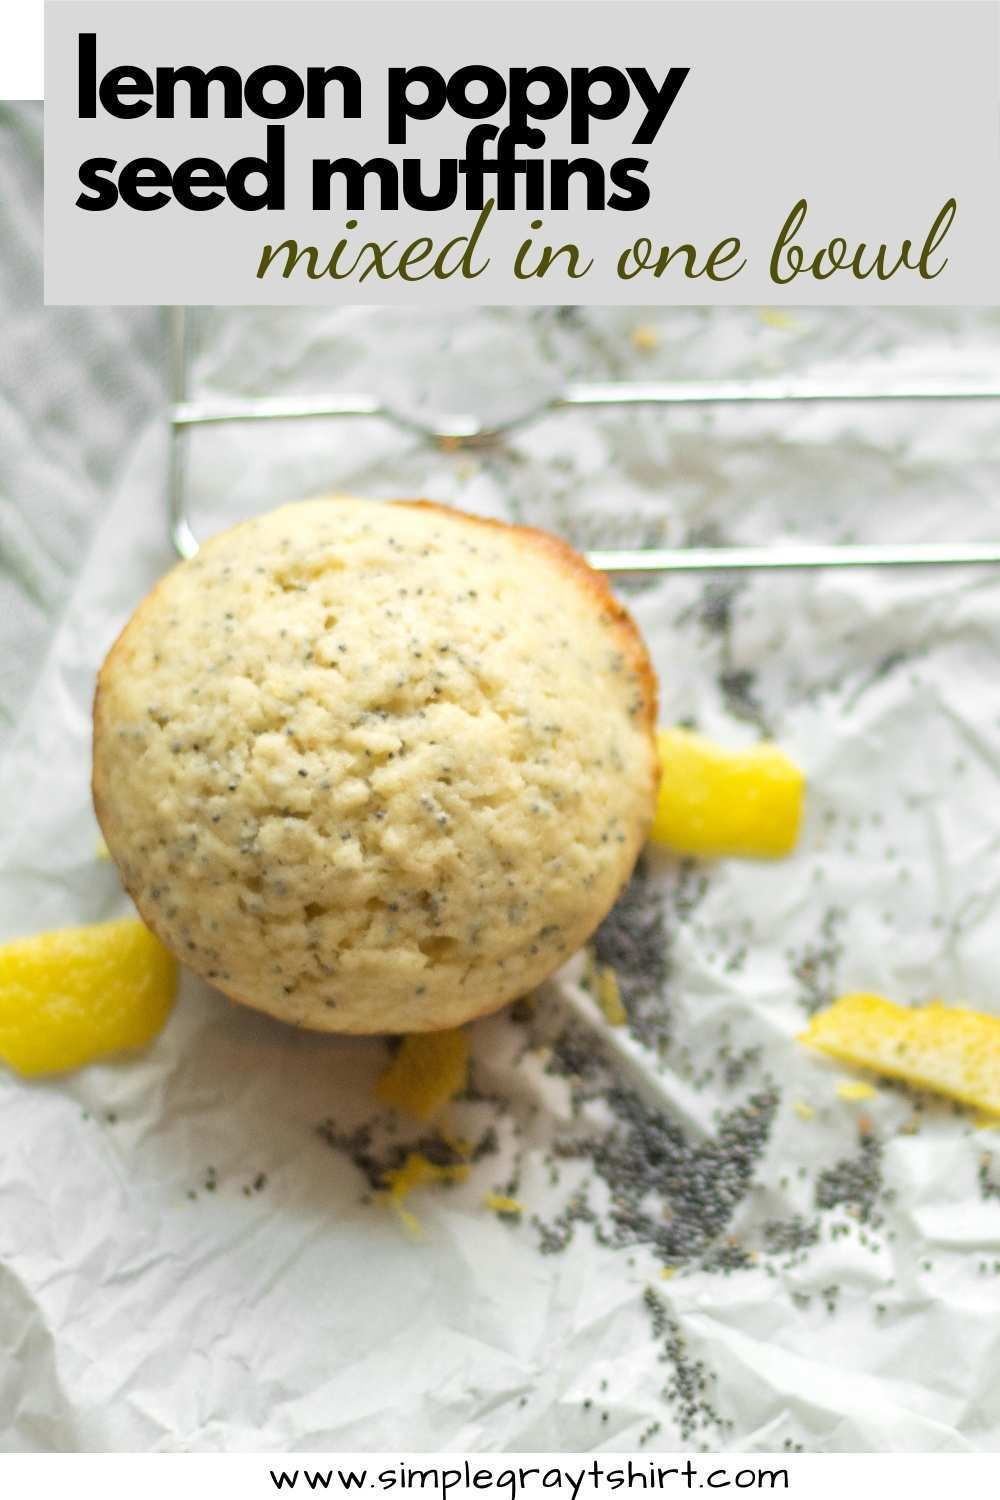 must have lemon poppy seed muffins! Lemon poppyseed muffins make a great addition to any breakfast